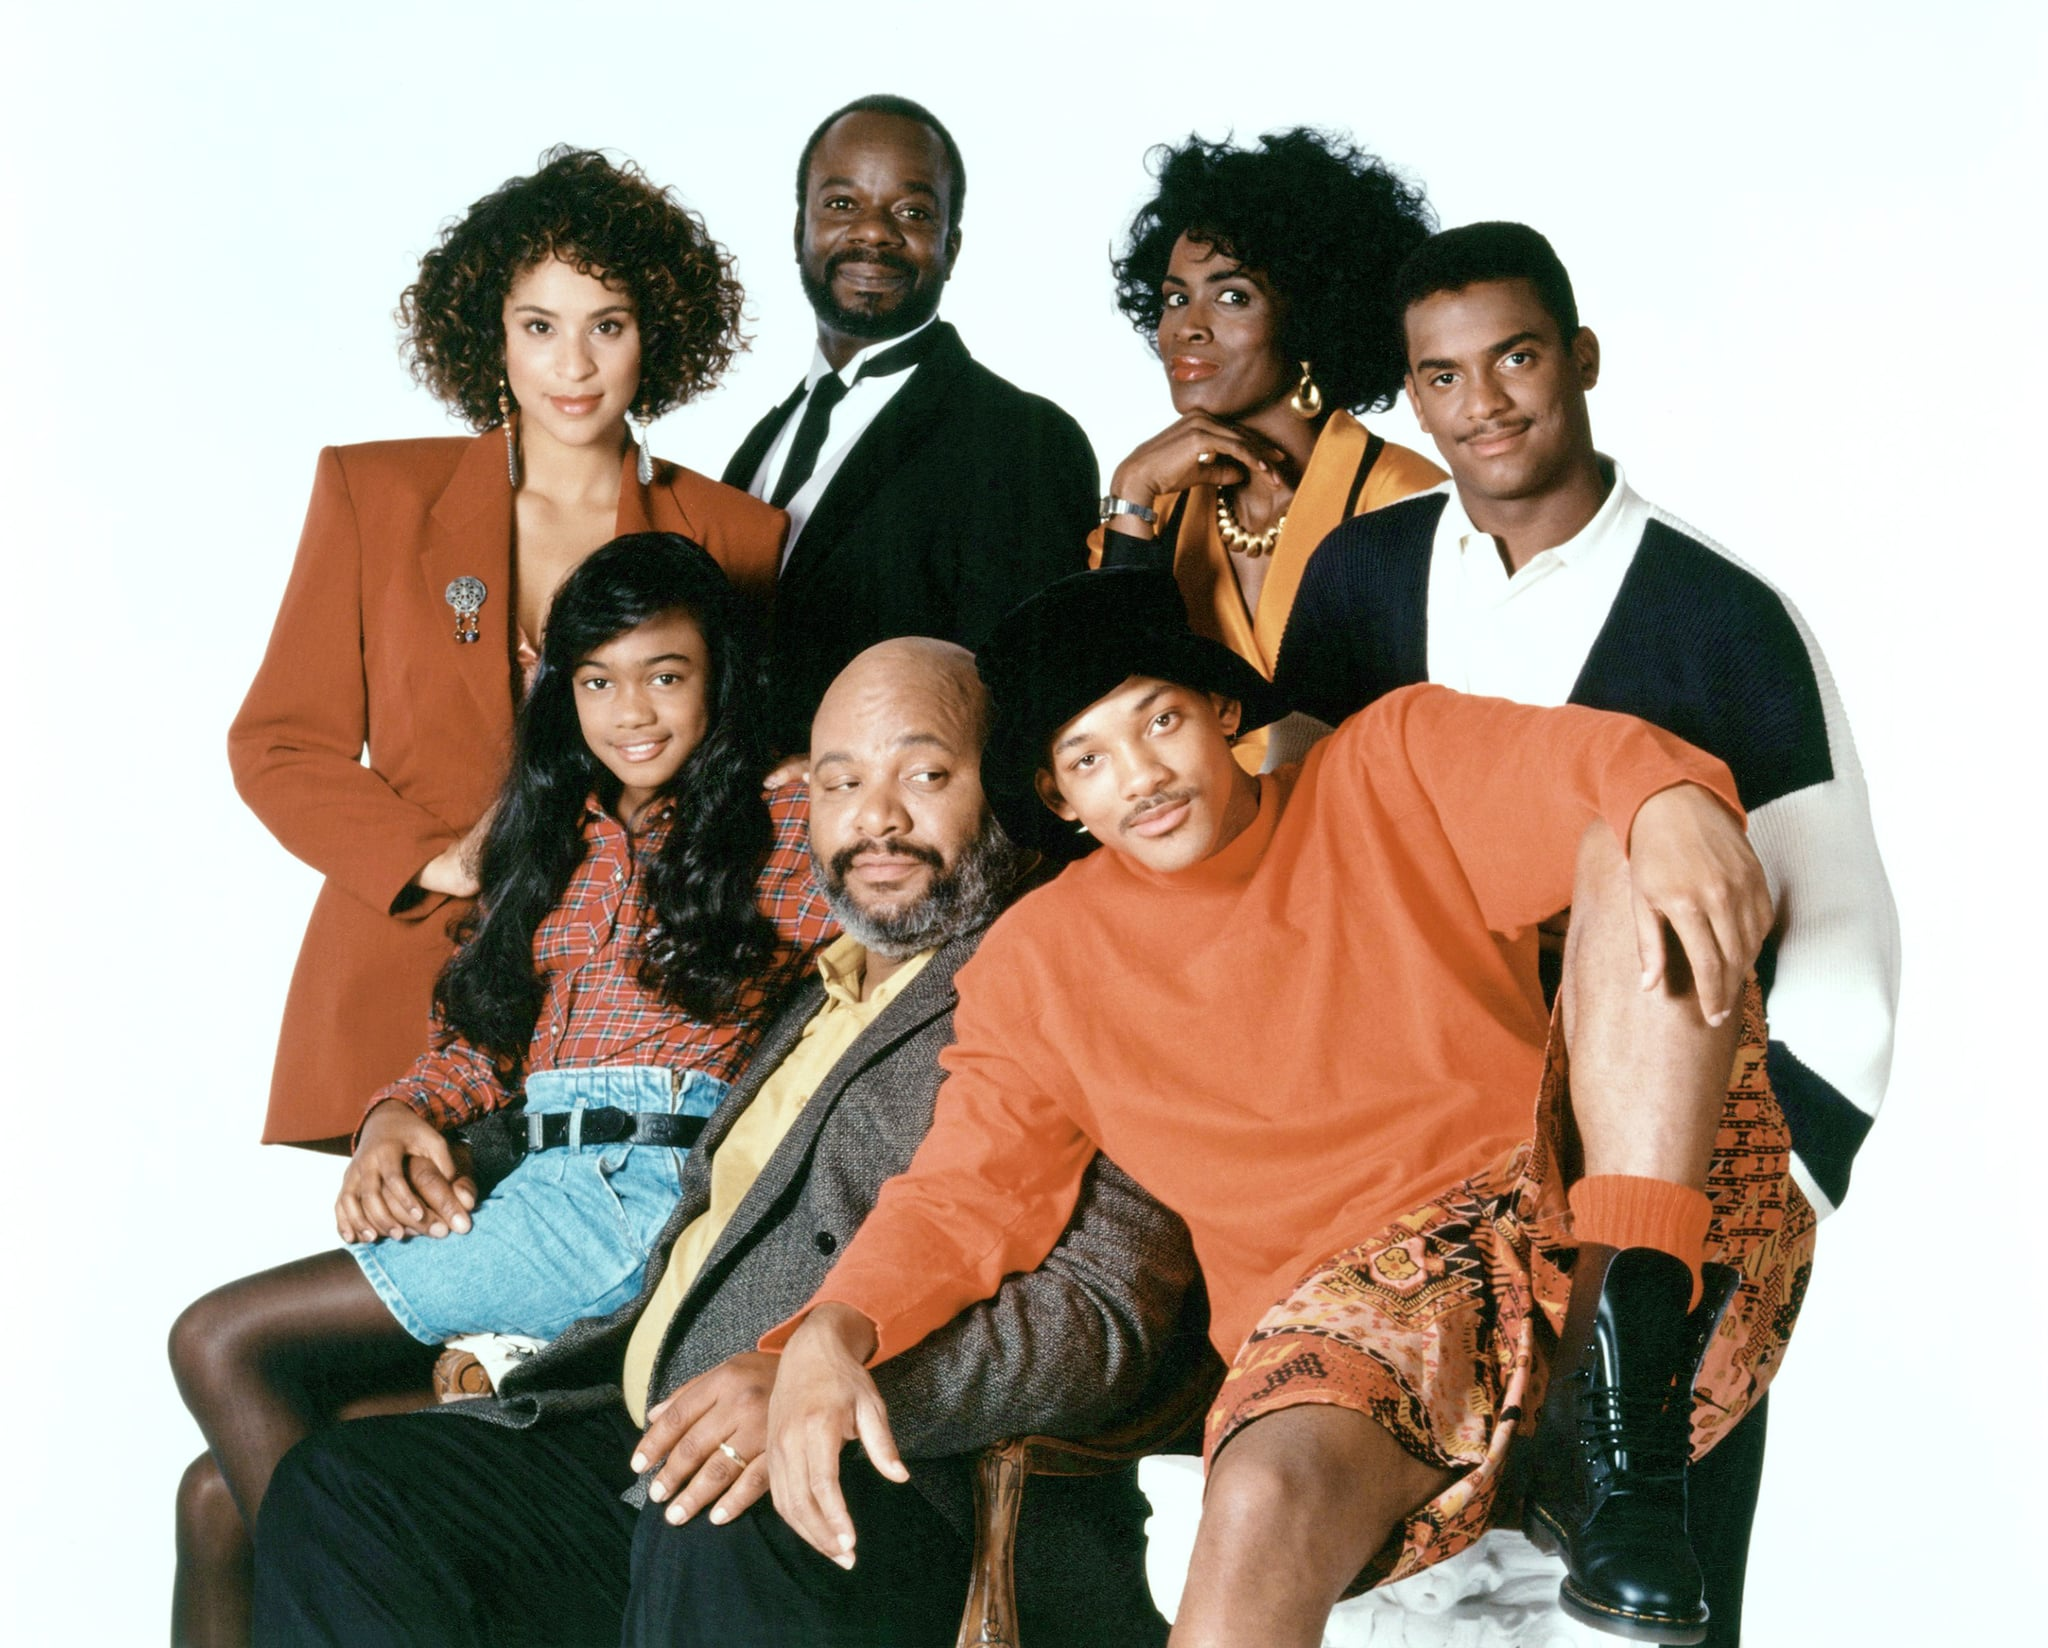 THE FRESH PRINCE OF BEL-AIR, (front, from left): Tatyana Ali, James Avery, Will Smith, (back): Karyn Parsons, Joseph Marcell, Janet Hubert, Alfonso Ribeiro, 1990-96.  NBC / Courtesy: Everett Collection